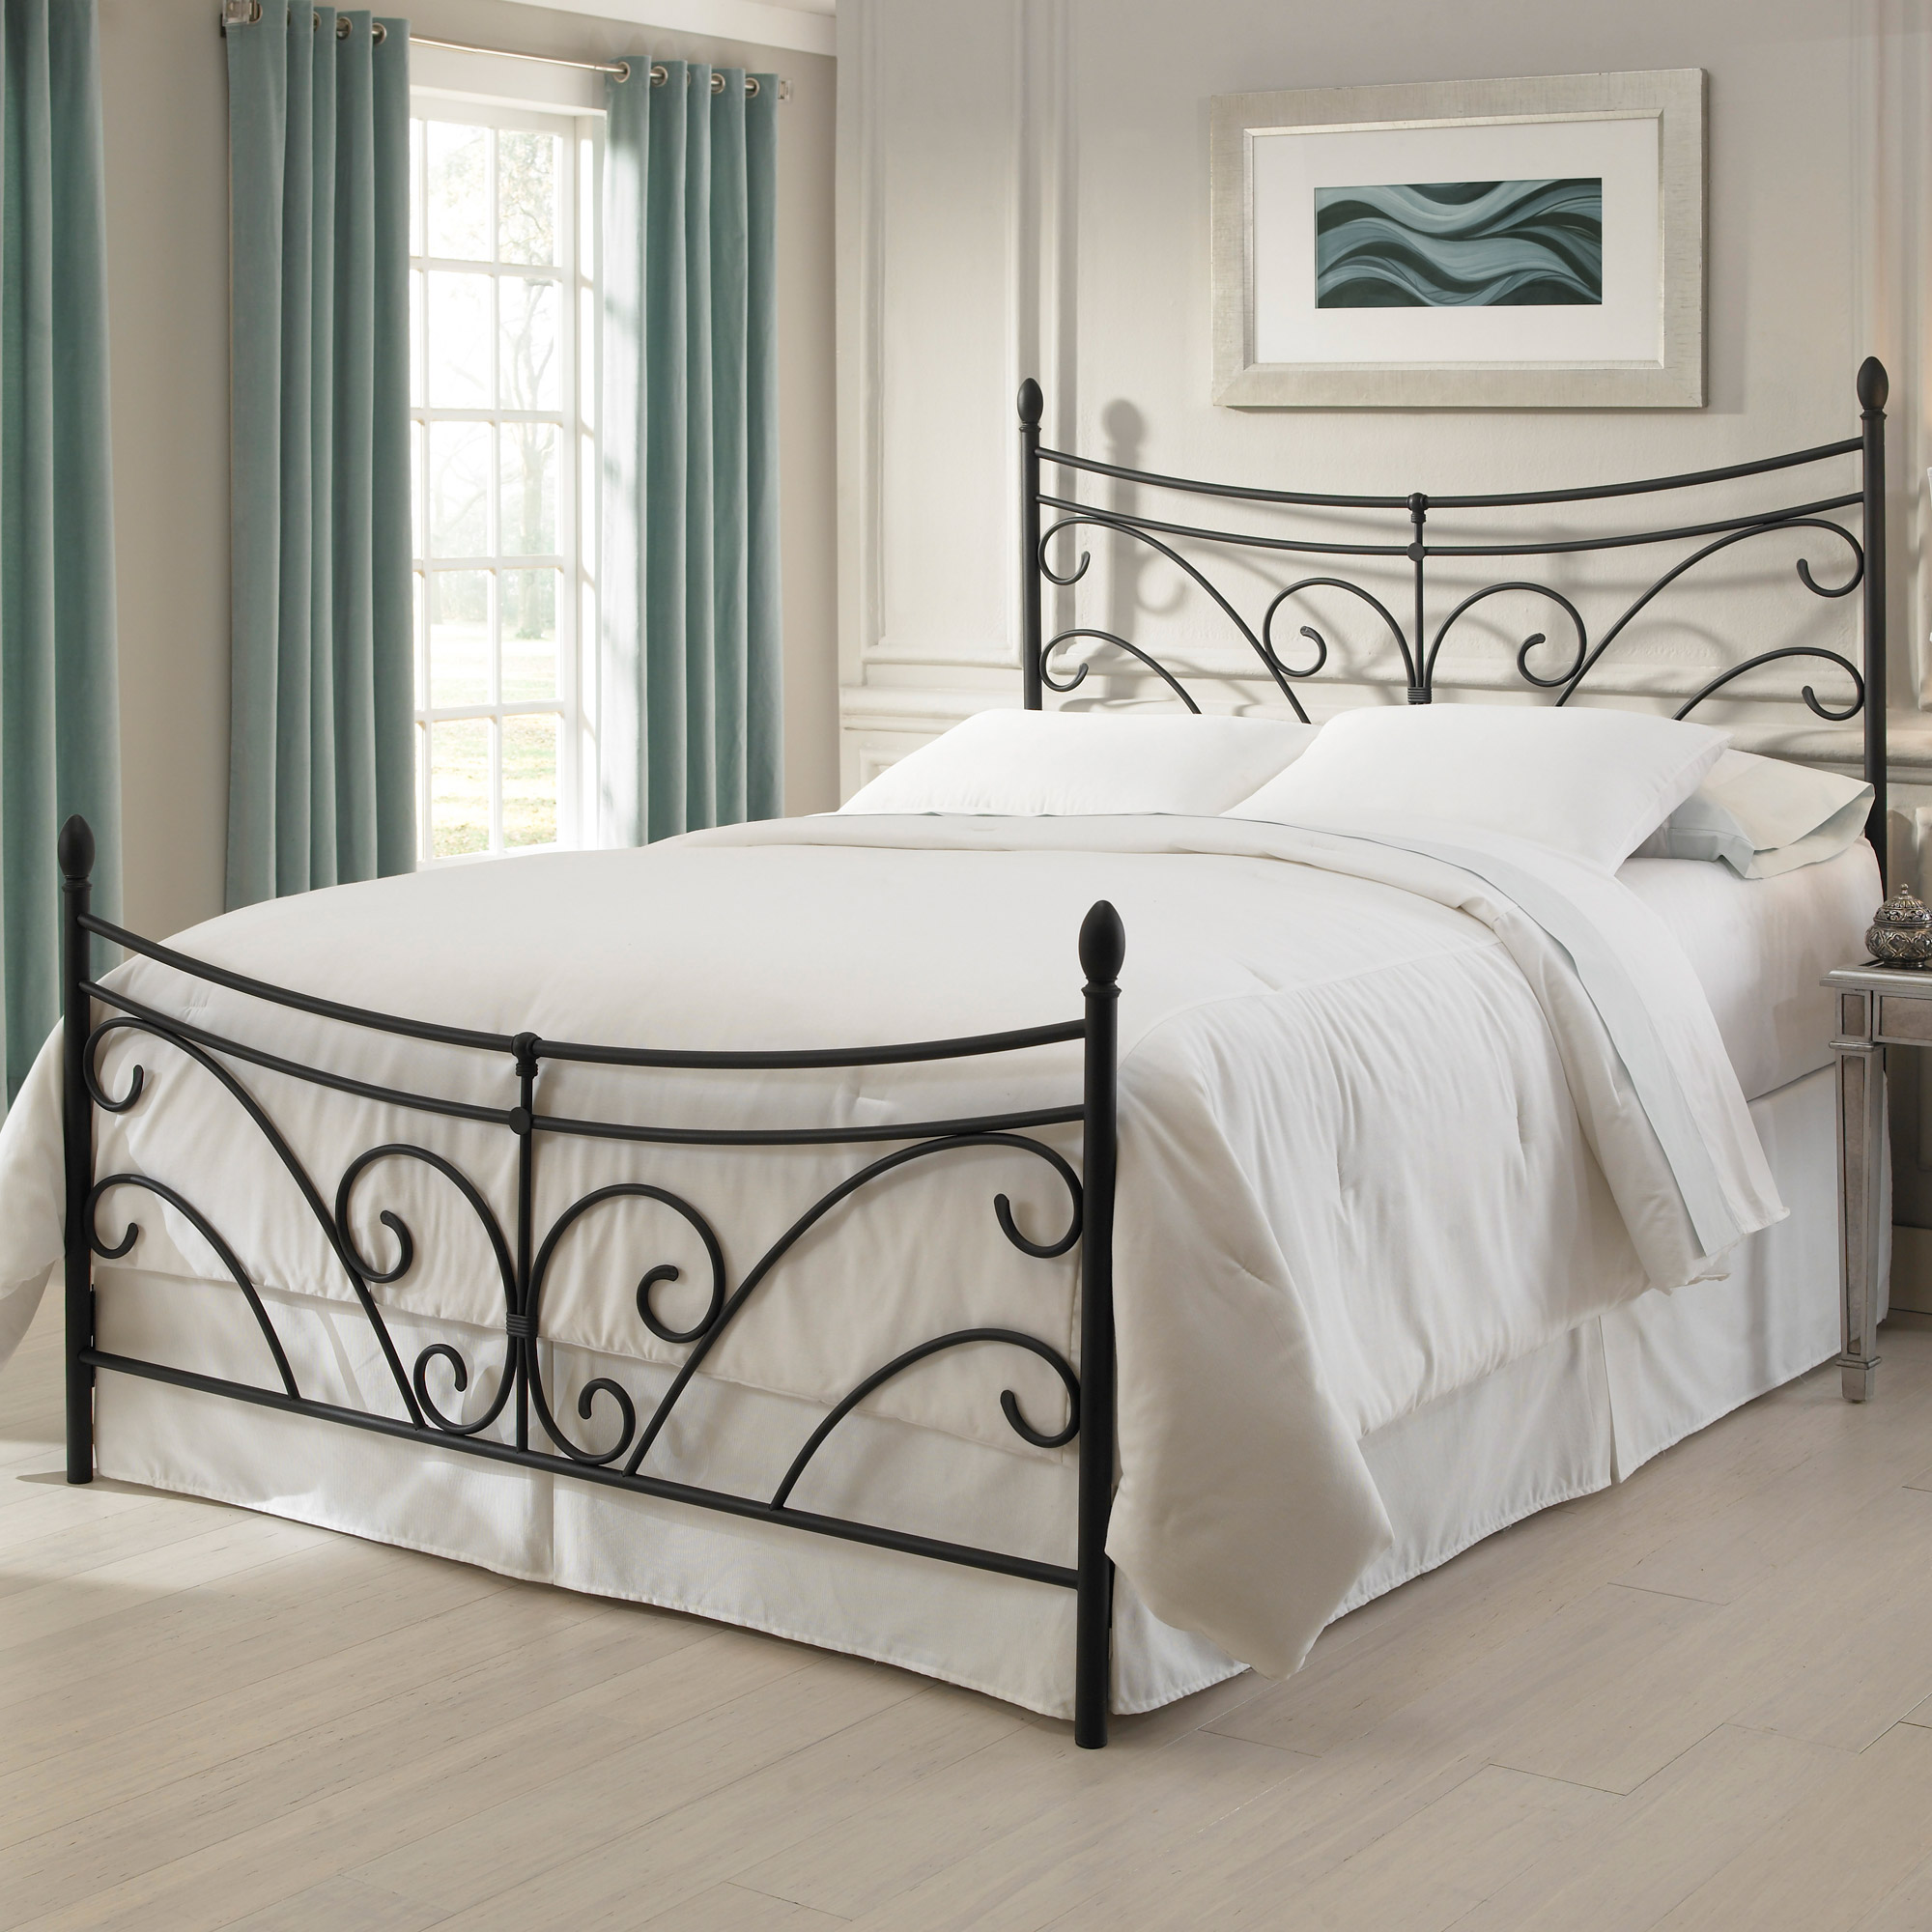 headboards beds bookcase headboard full frames metal queen wrought of bed king for and also iron white gallery